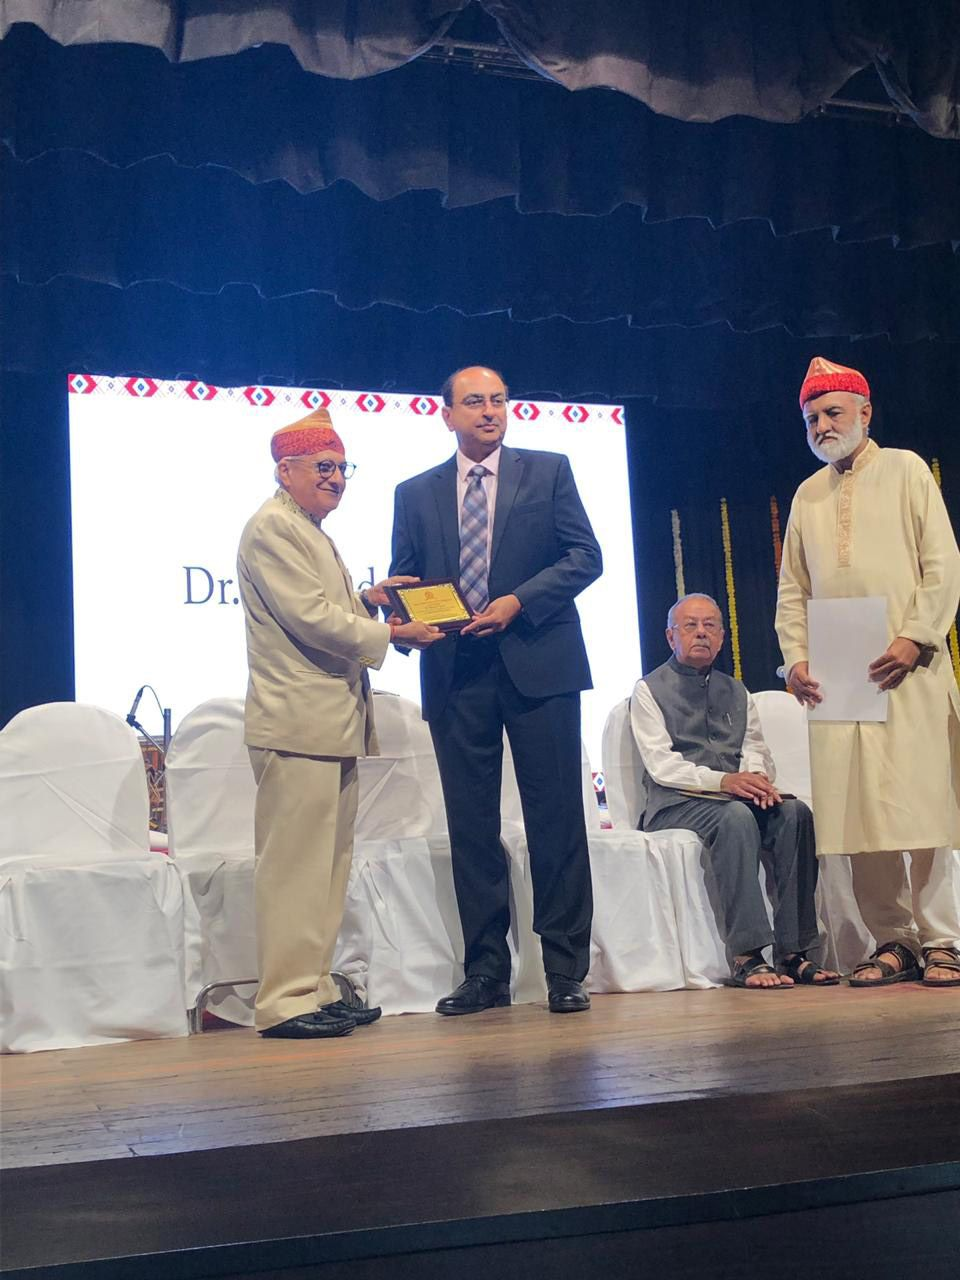 Dr. Rajendra Toprani Sir Falicitated by Global Kutchhi Bhatia Foundation at Mumbai for Being Vicepresident of IASO and His Other Achievements in the Field of Cancer